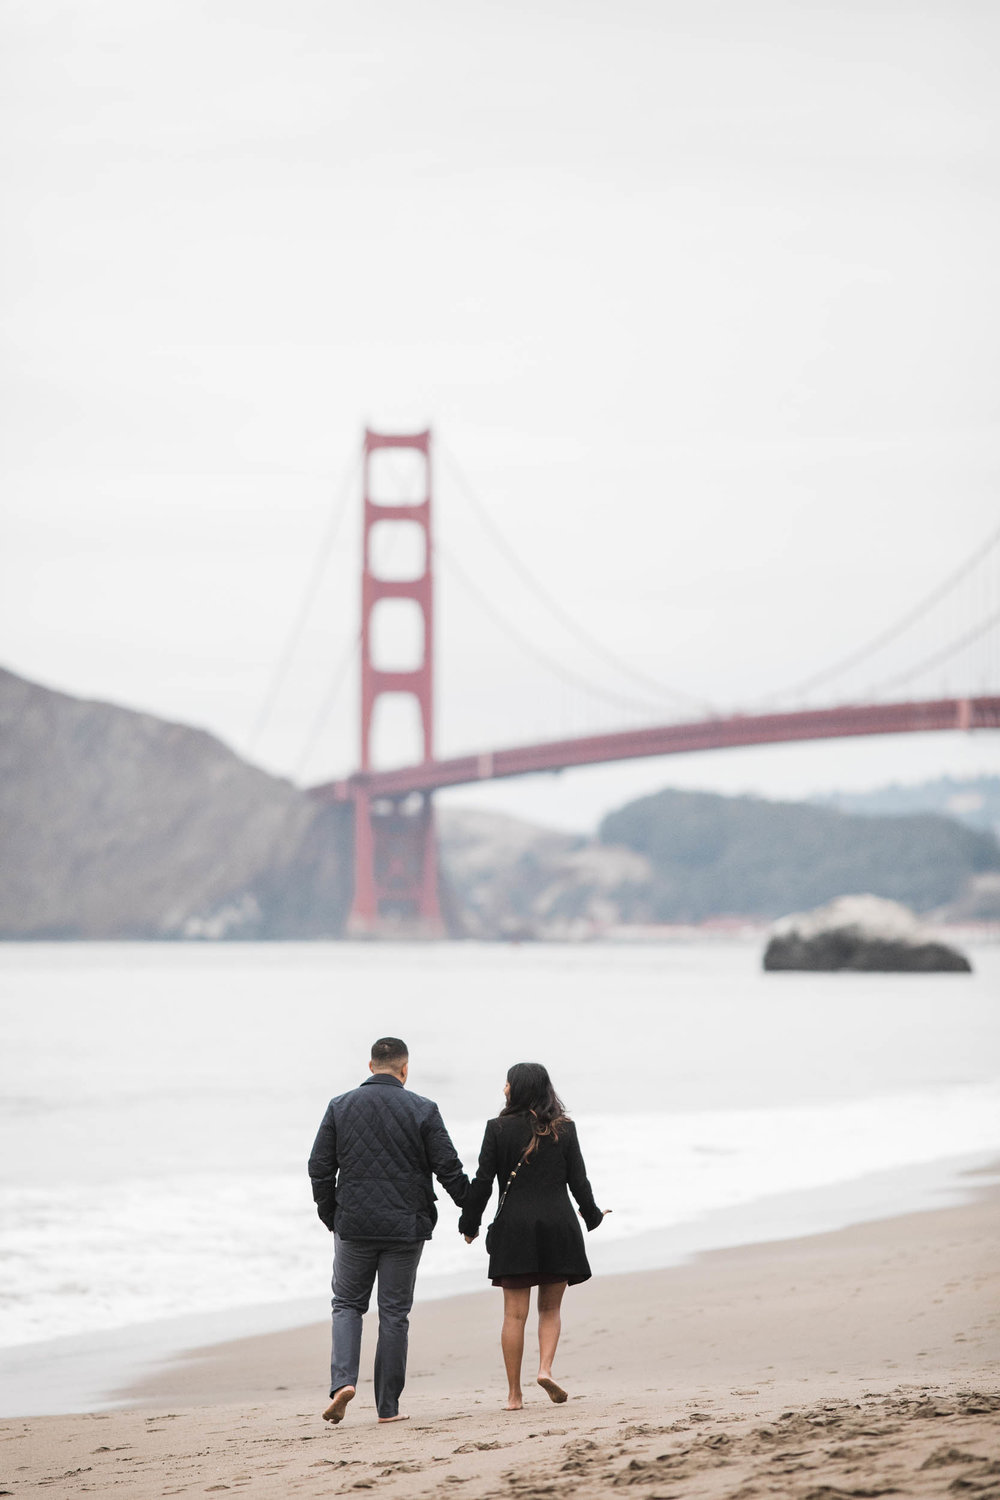 112017_D+S Proposal_Baker Beach_Buena Lane Photography_018.jpg